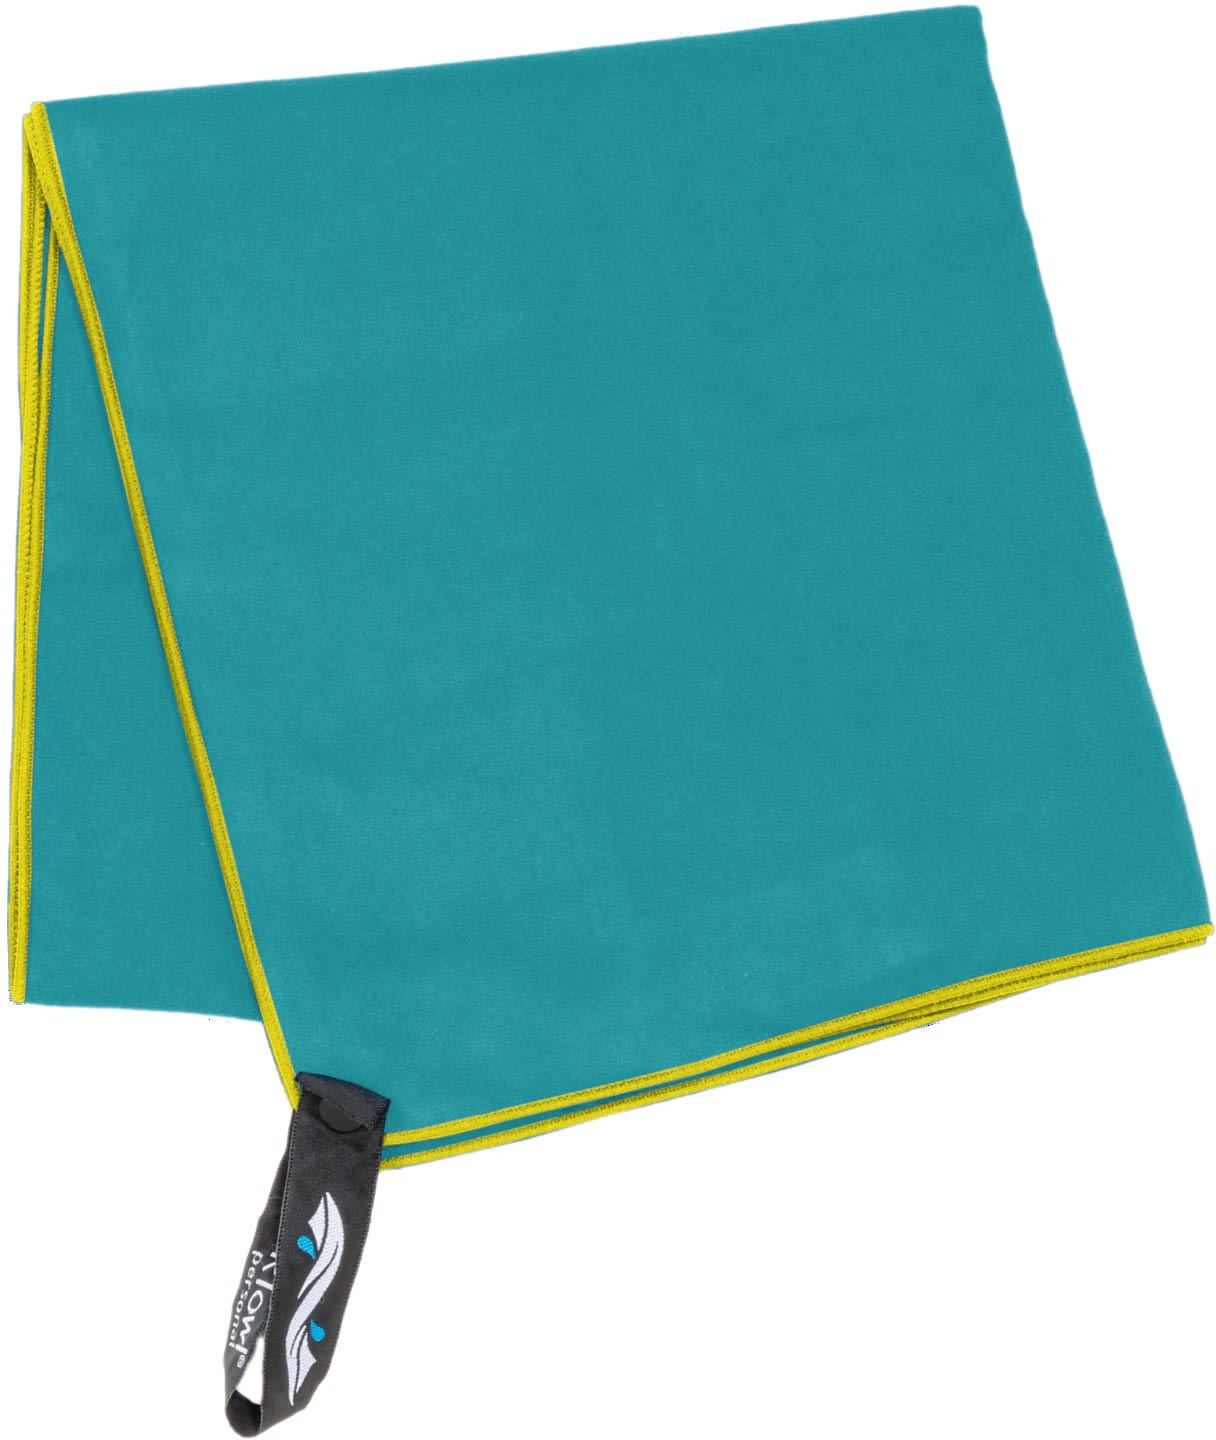 PackTowl Personal XXL-Strand Blau, One Size -Farbe Agave, One Size